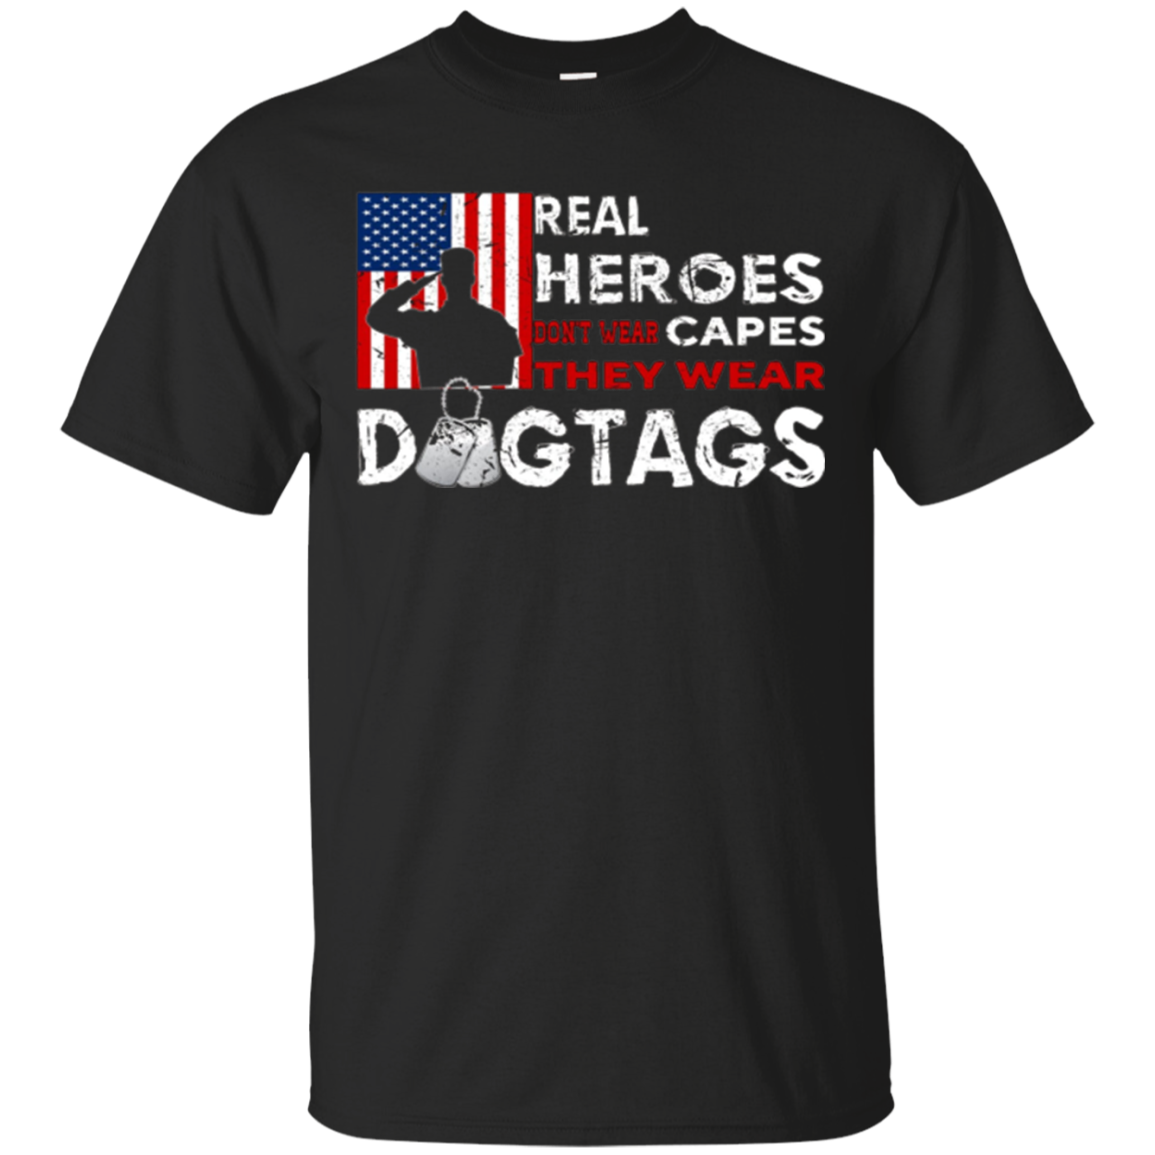 Real Heroes Don't Wear Capes, They Wear Dogtags T-shirt